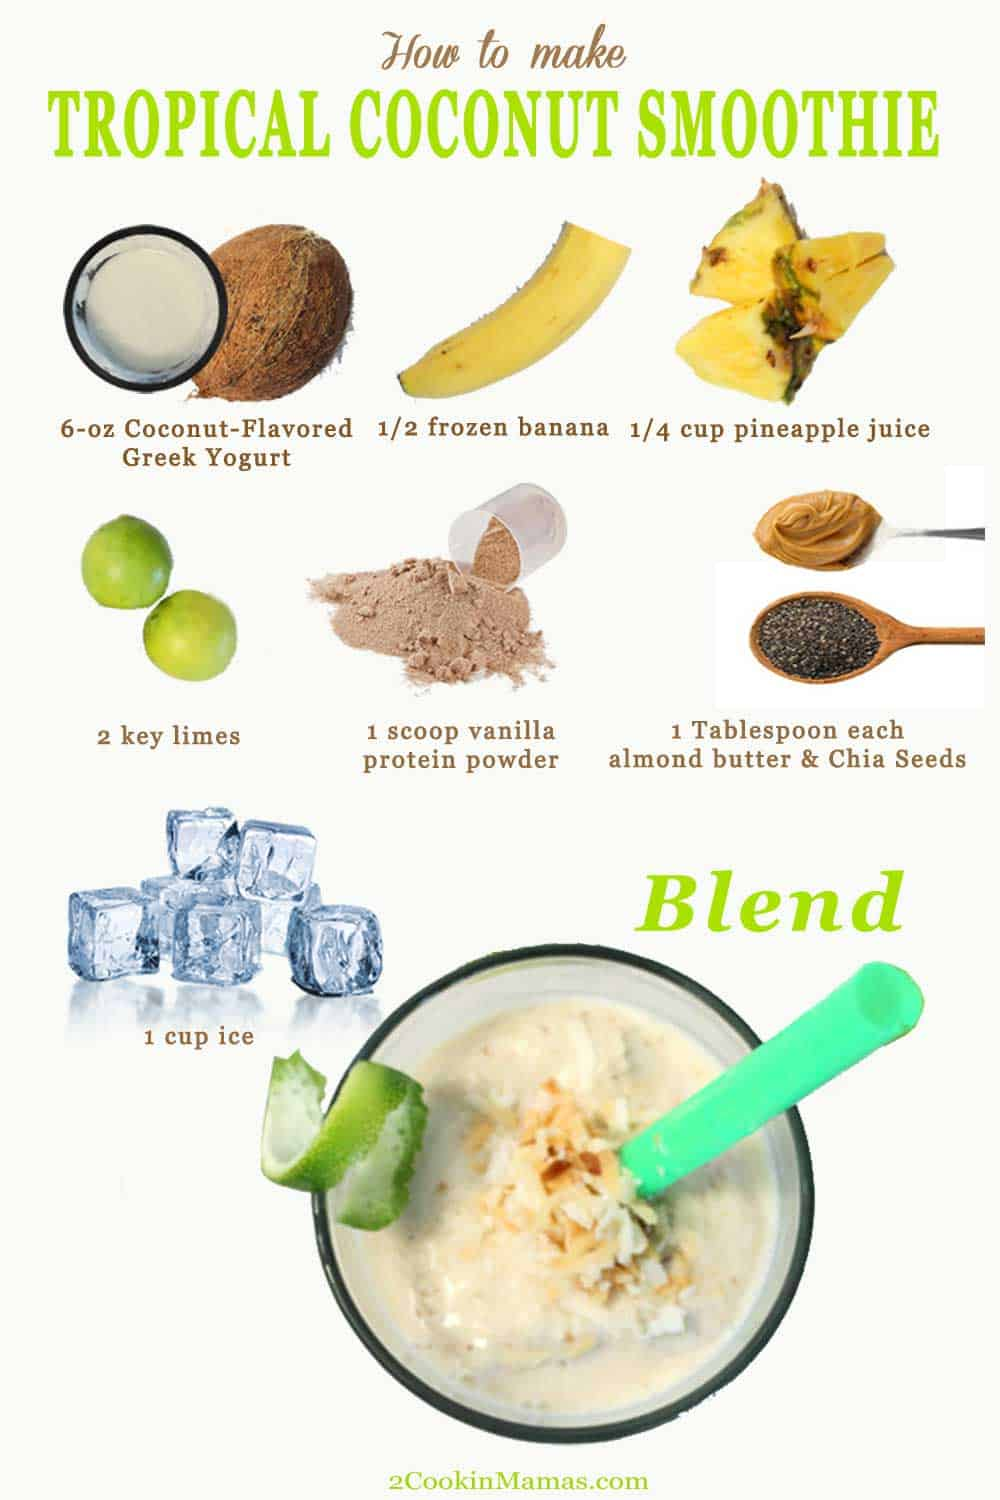 How to make a tropical coconut smoothie | 2 Cookin Mamas Our Tropical Coconut Smoothie is an energy boosting, healthy smoothie with all the flavors of the islands. Think coconut, pineapple, banana & limes. And all it takes is 5 minutes! Yum! #smoothie #tropical #healthy #breakfast #coconutsmoothie #recipe #yogurt #banana #pineapple #lime